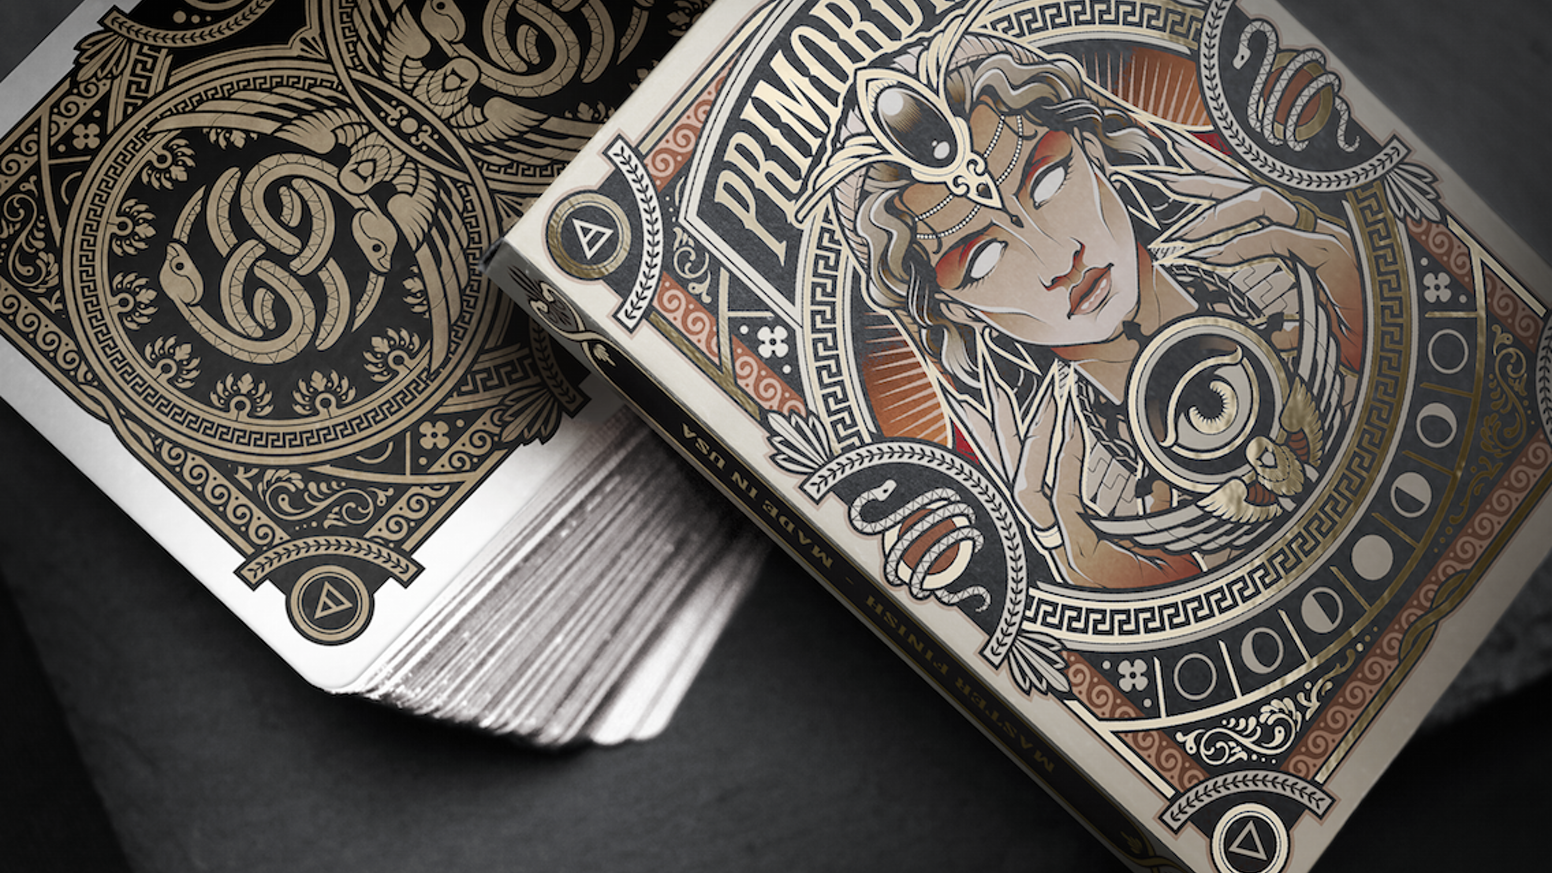 A limited edition playing card series based on the primordial deities from Greek Mythology.